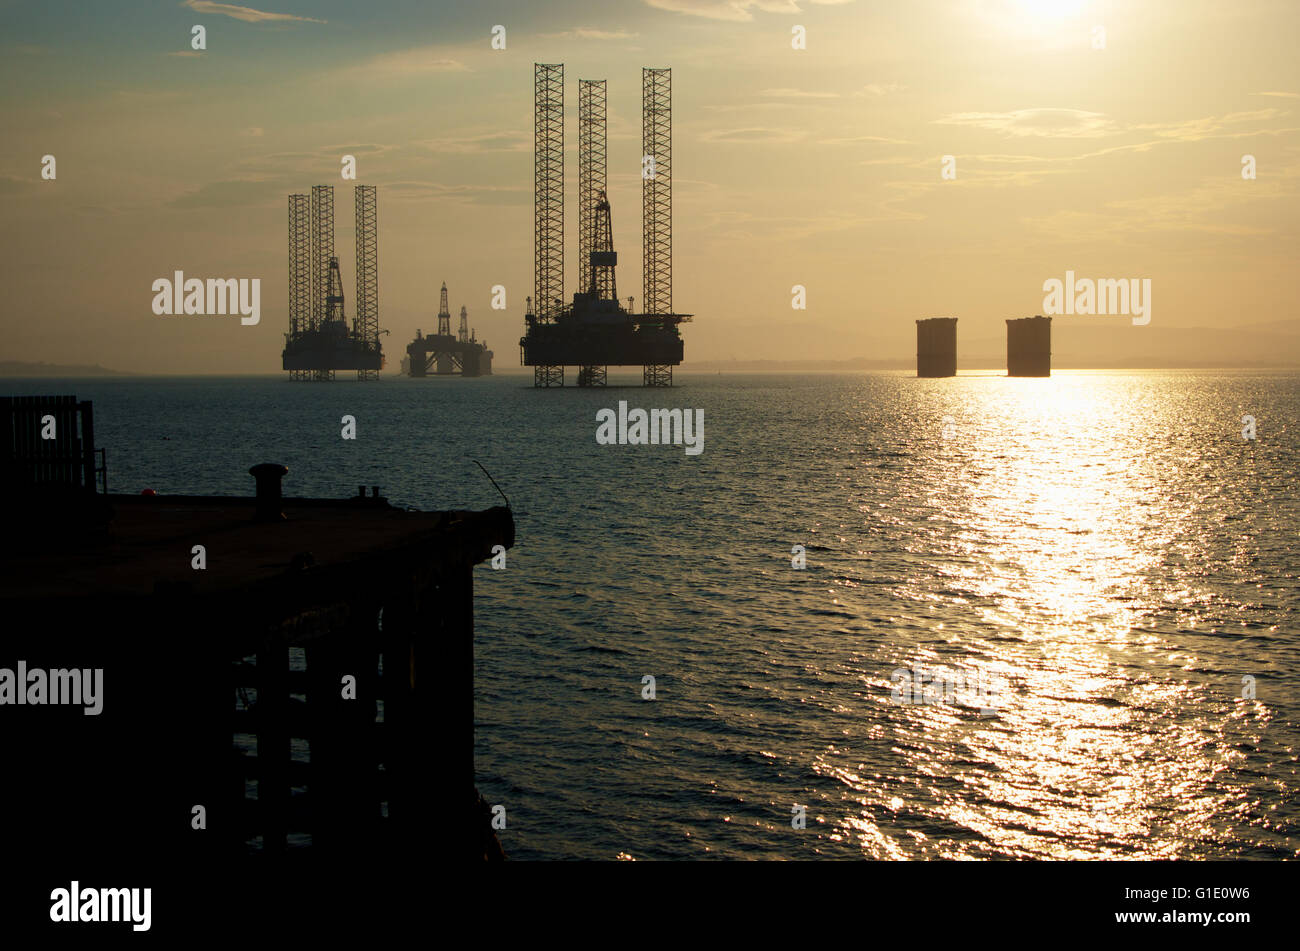 Oil rigs parked in Cromarty Firth, Scotland - Stock Image